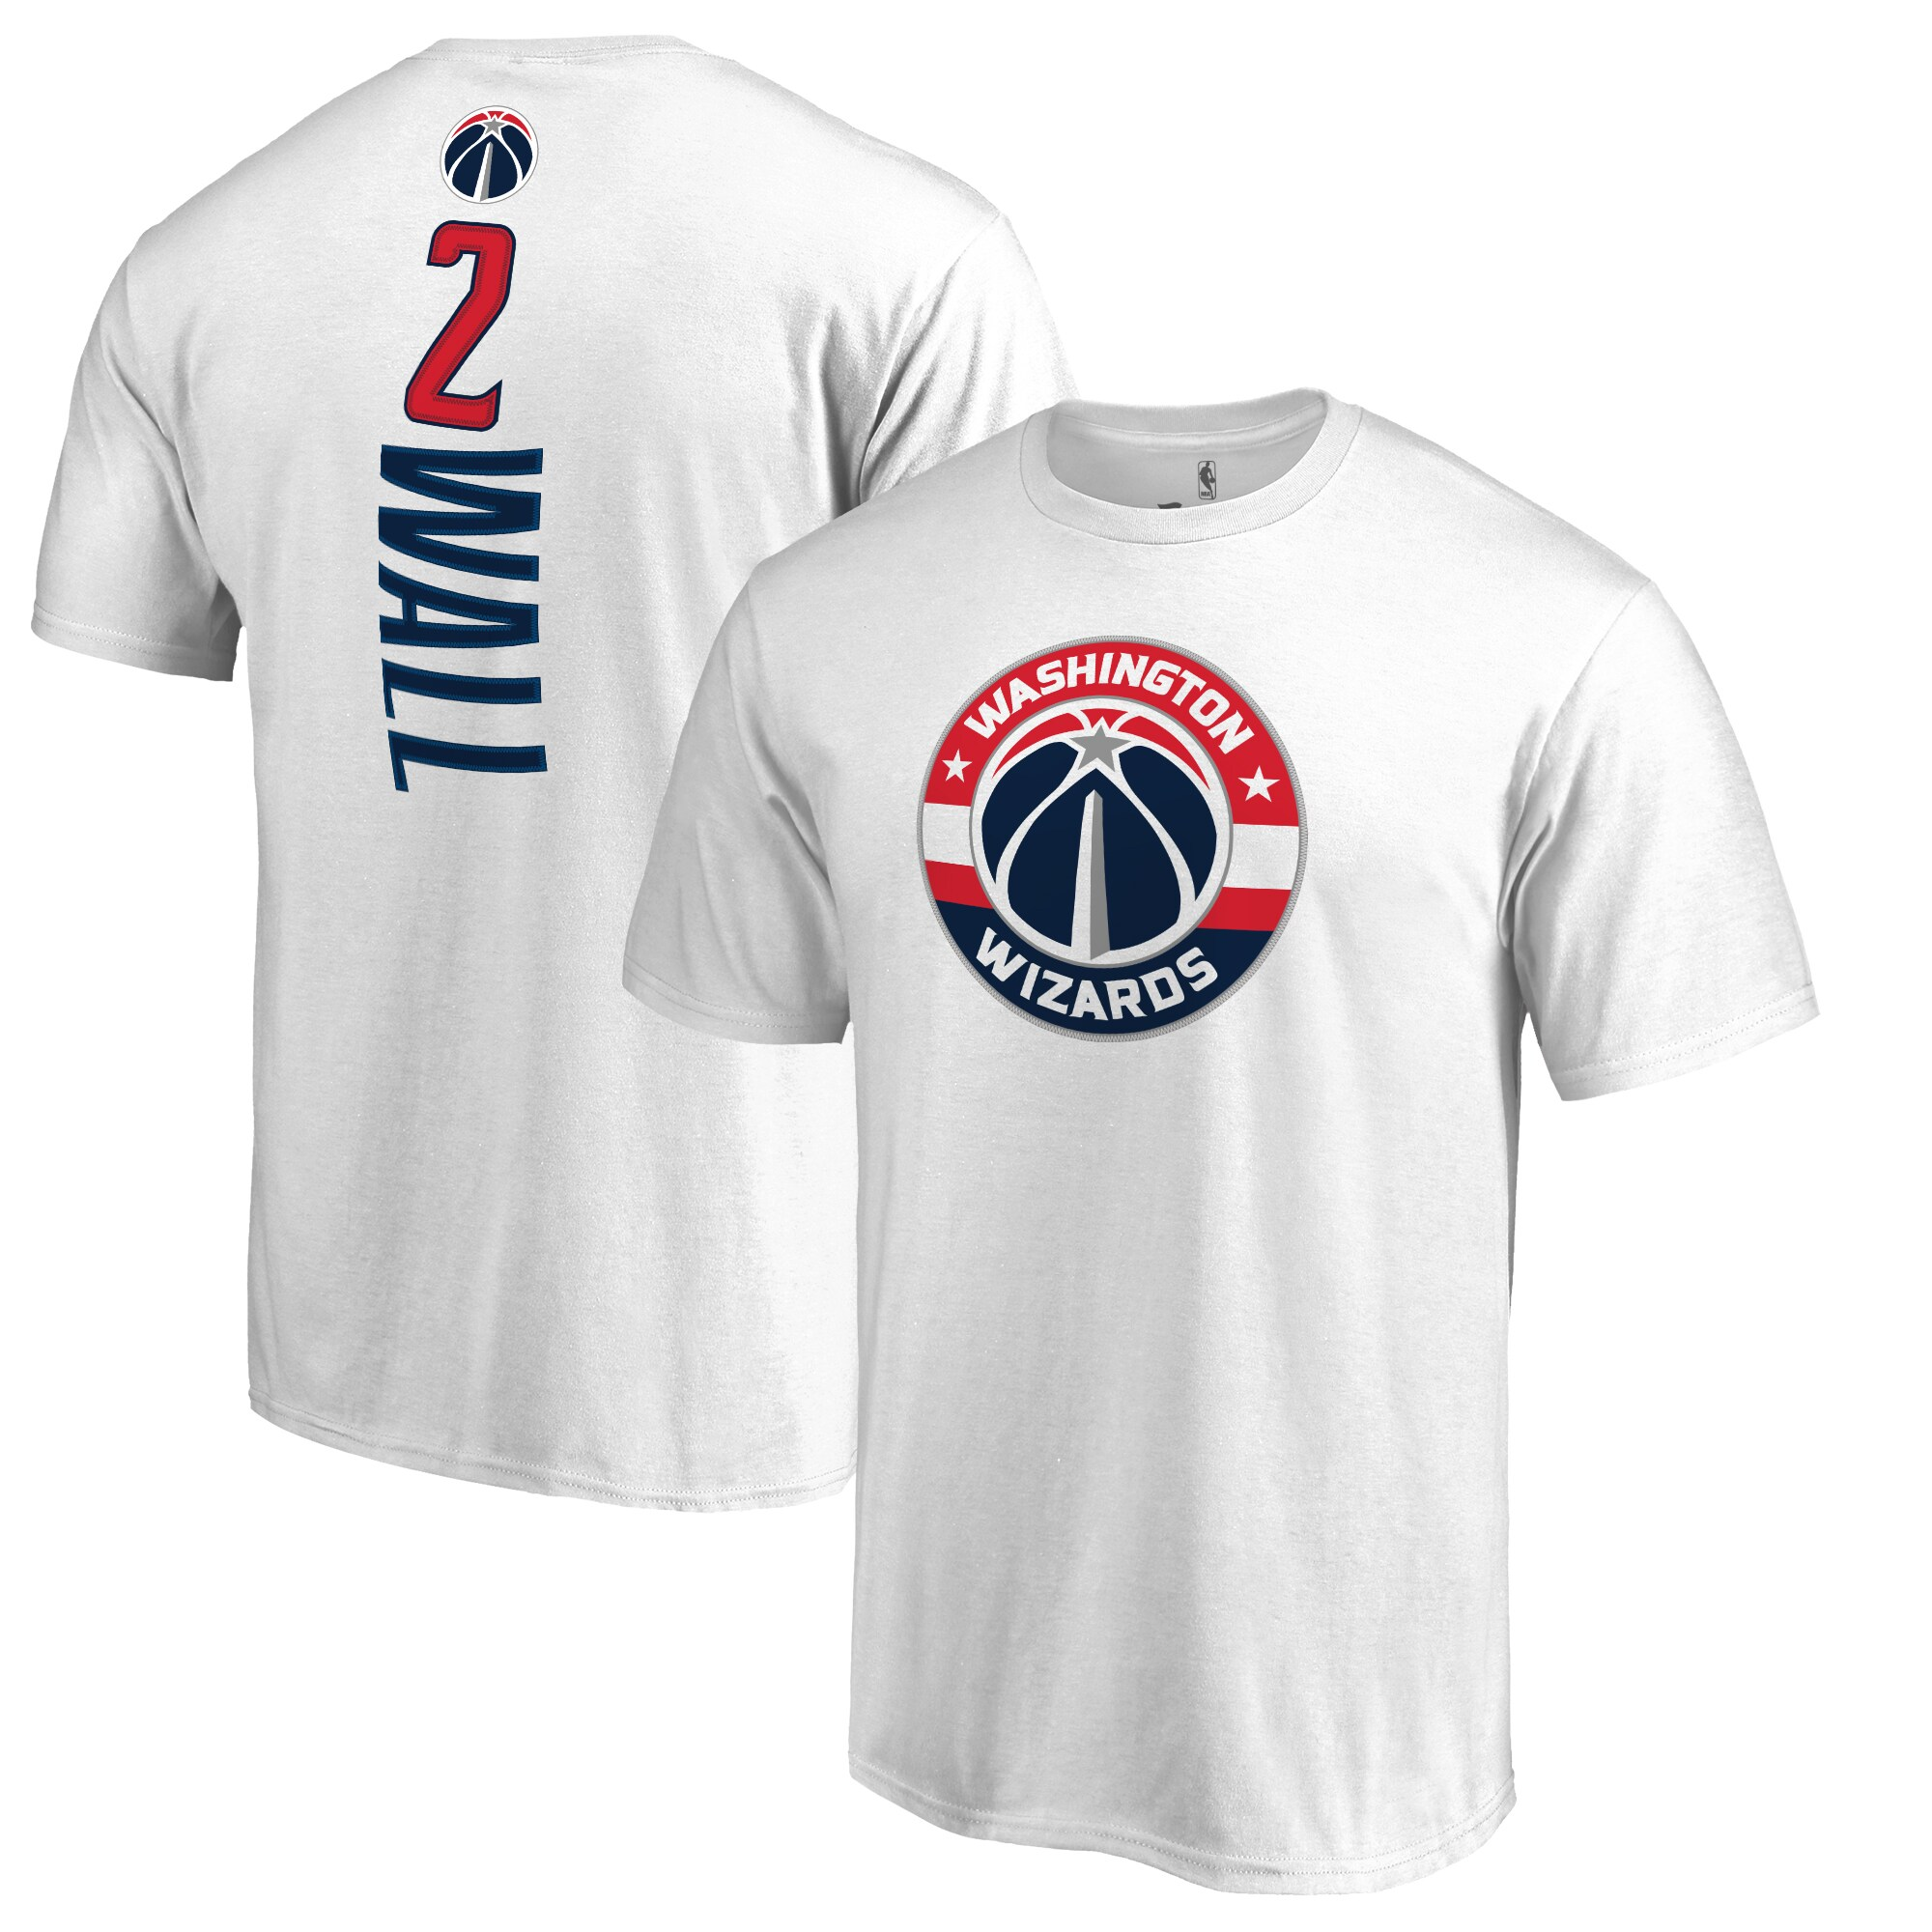 John Wall Washington Wizards Backer T-Shirt - White